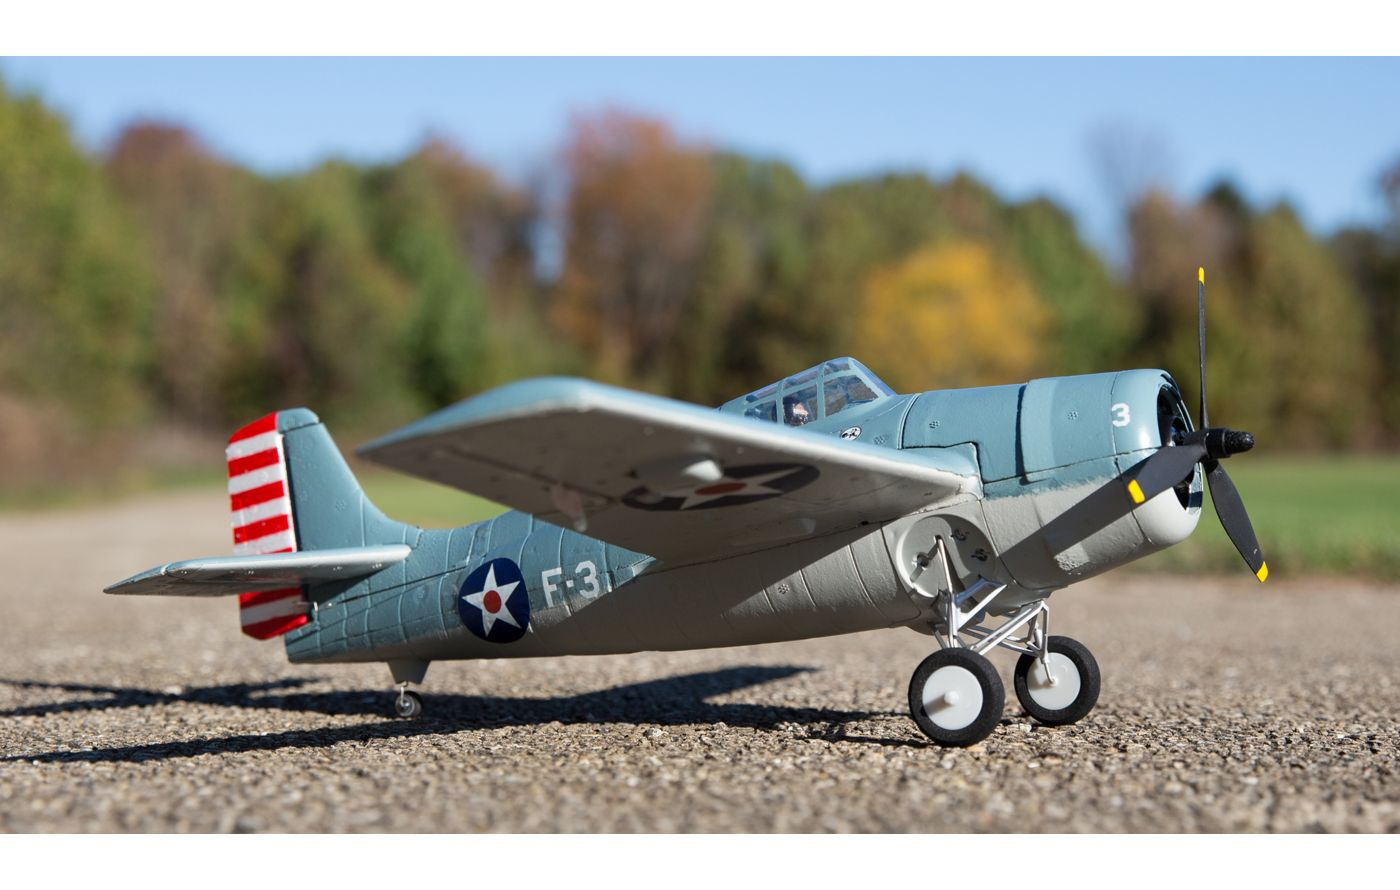 Image for UMX F4F Wildcat BNF Basic from Force RC